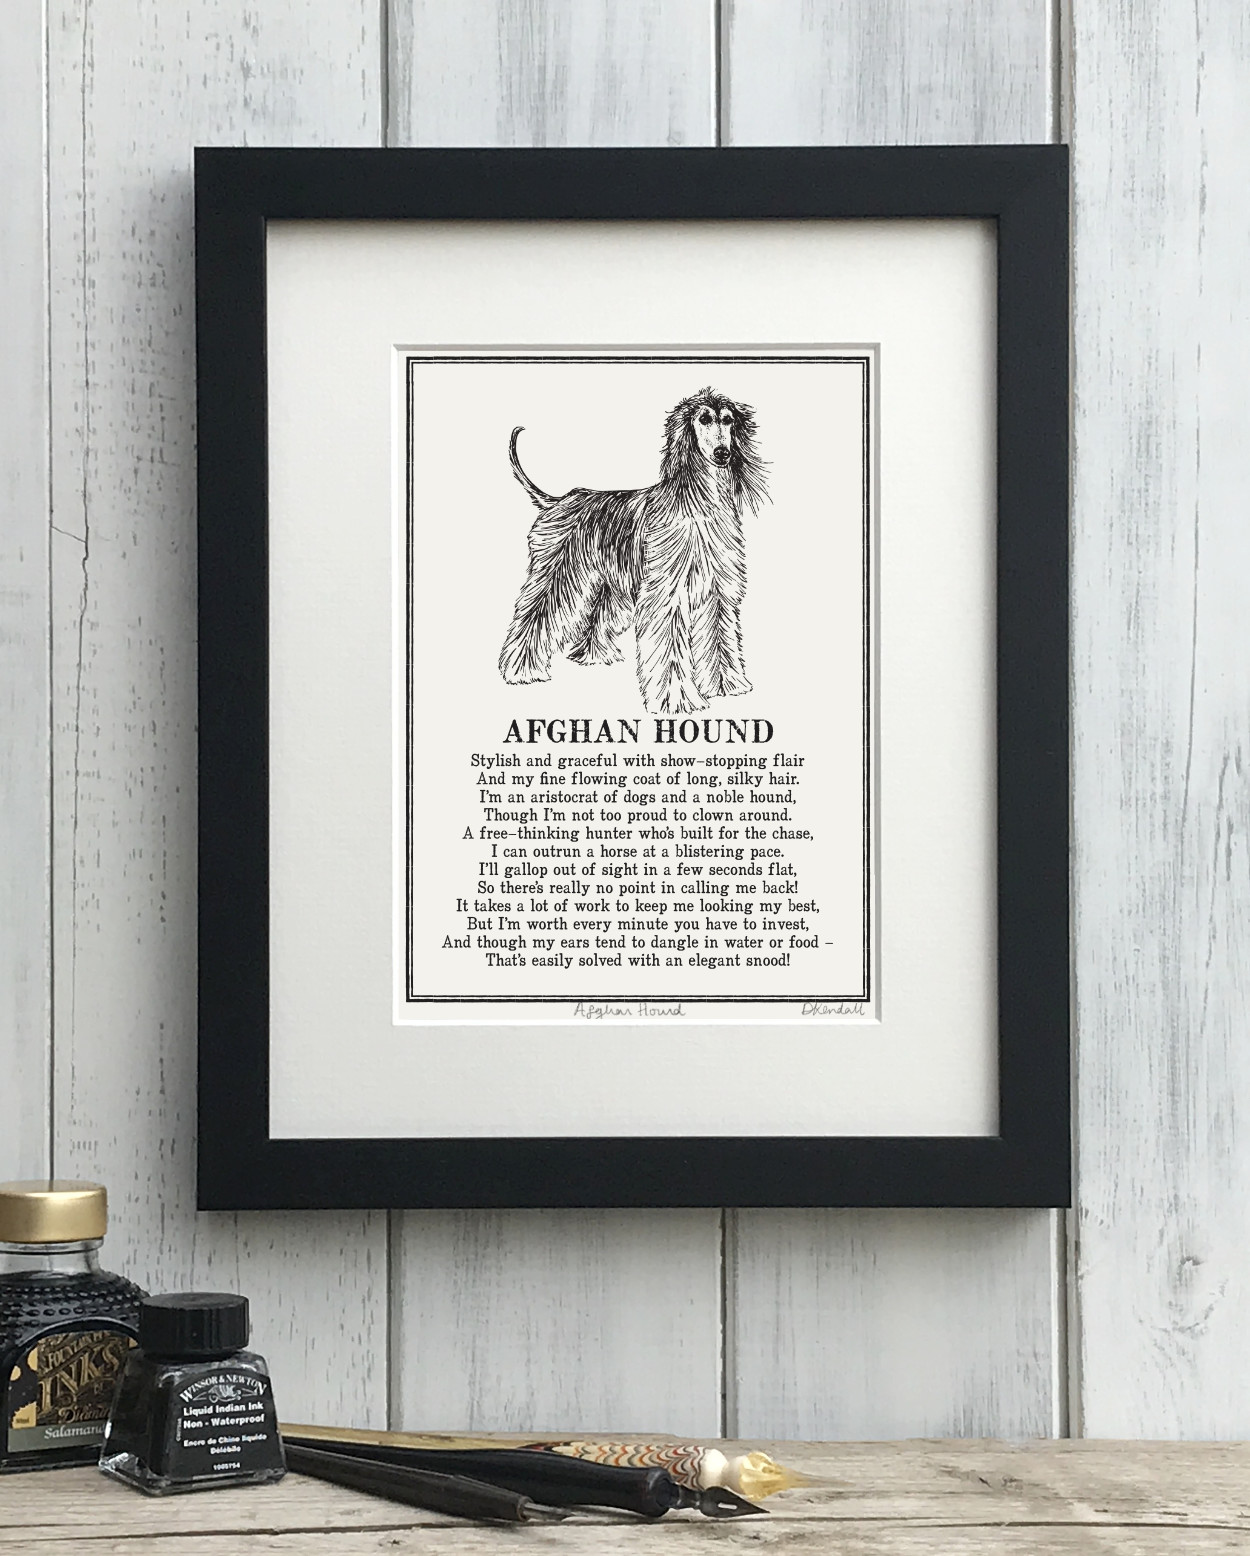 Afghan Hound Doggerel Illustrated Poem Art Print | The Enlightened Hound